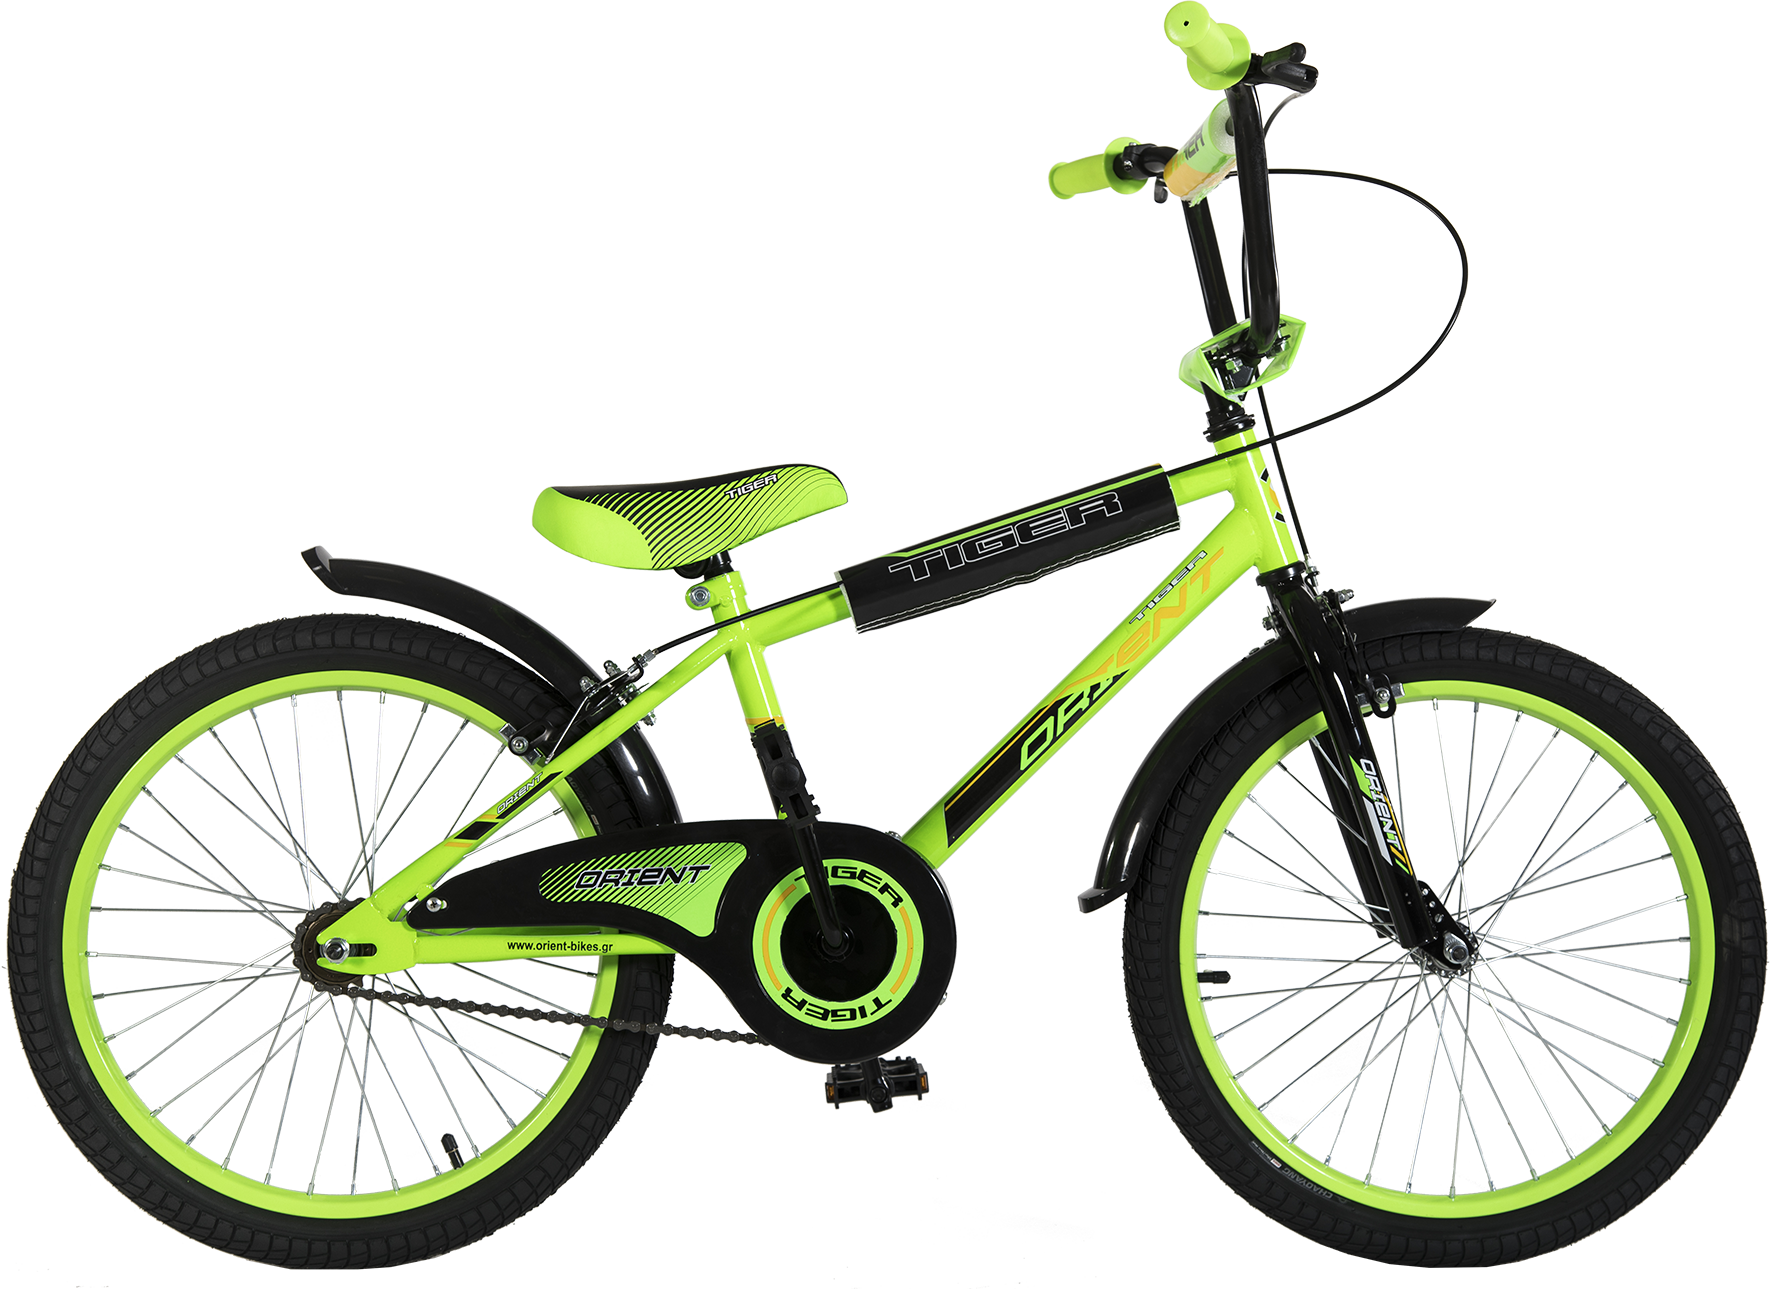 TIGER 20″ bike image